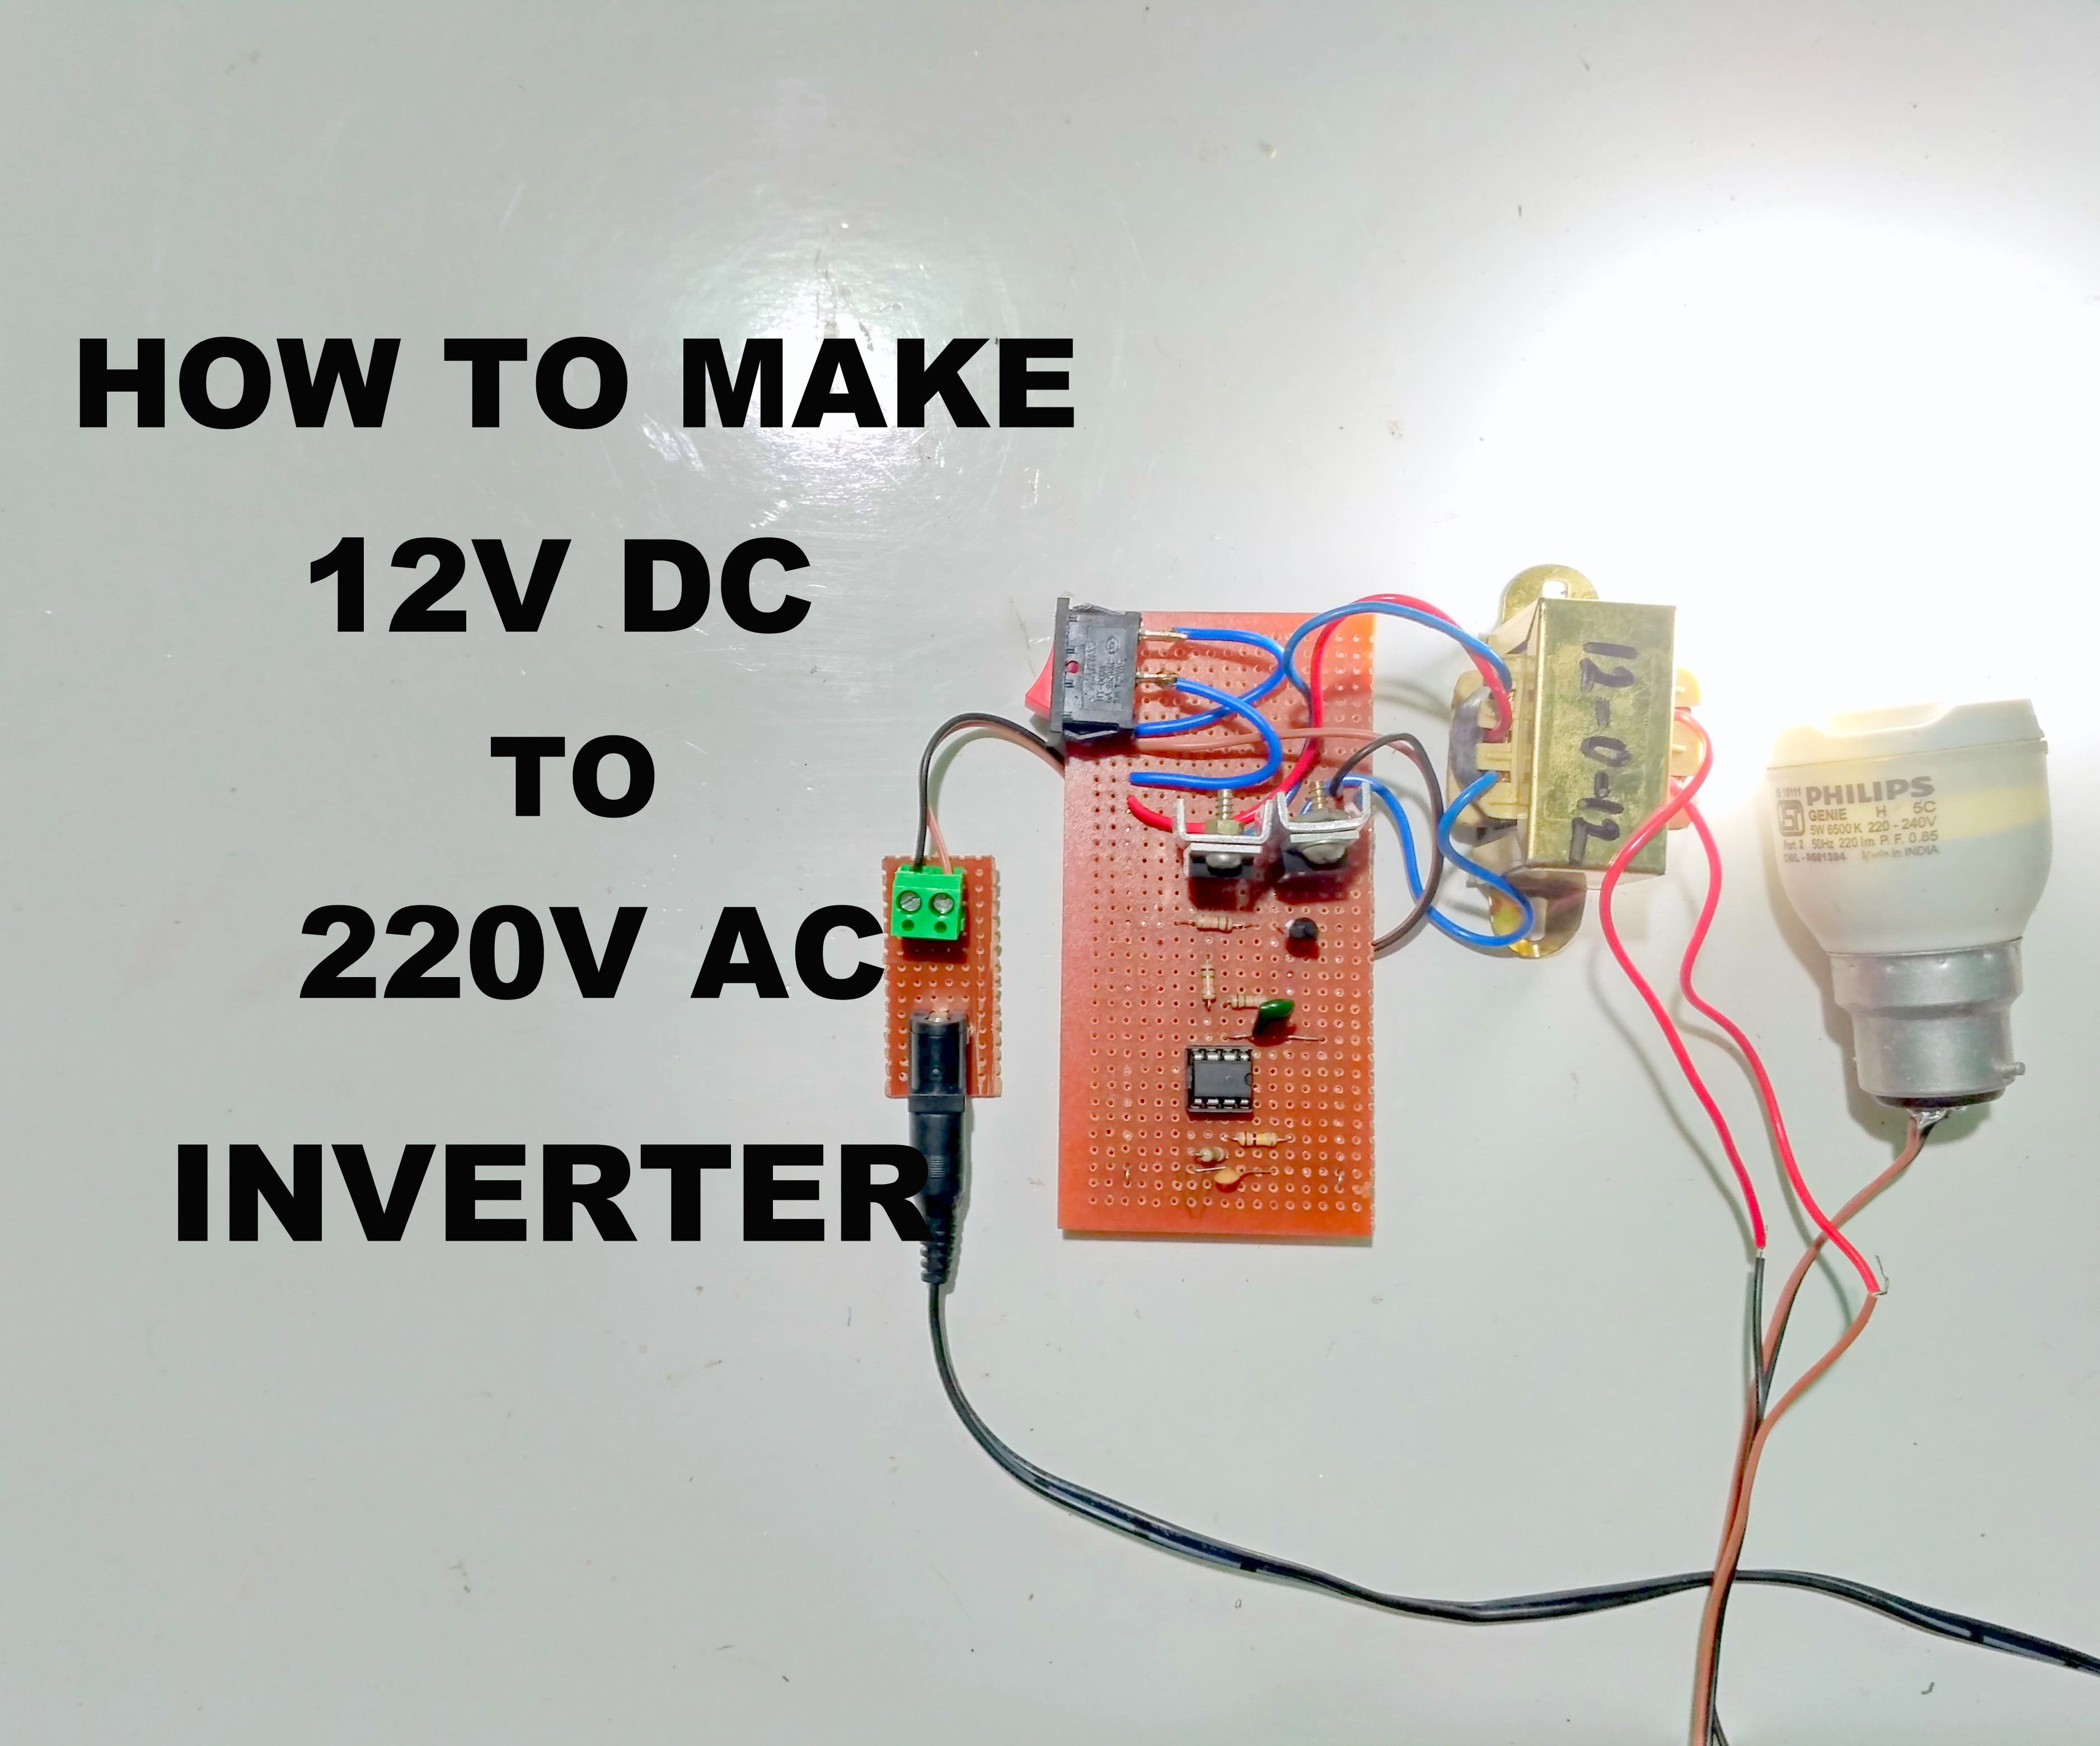 how to make 12v dc to 220v ac inverter 4 steps (with pictures) 100w inverter circuit diagram how to make simple inverter 100